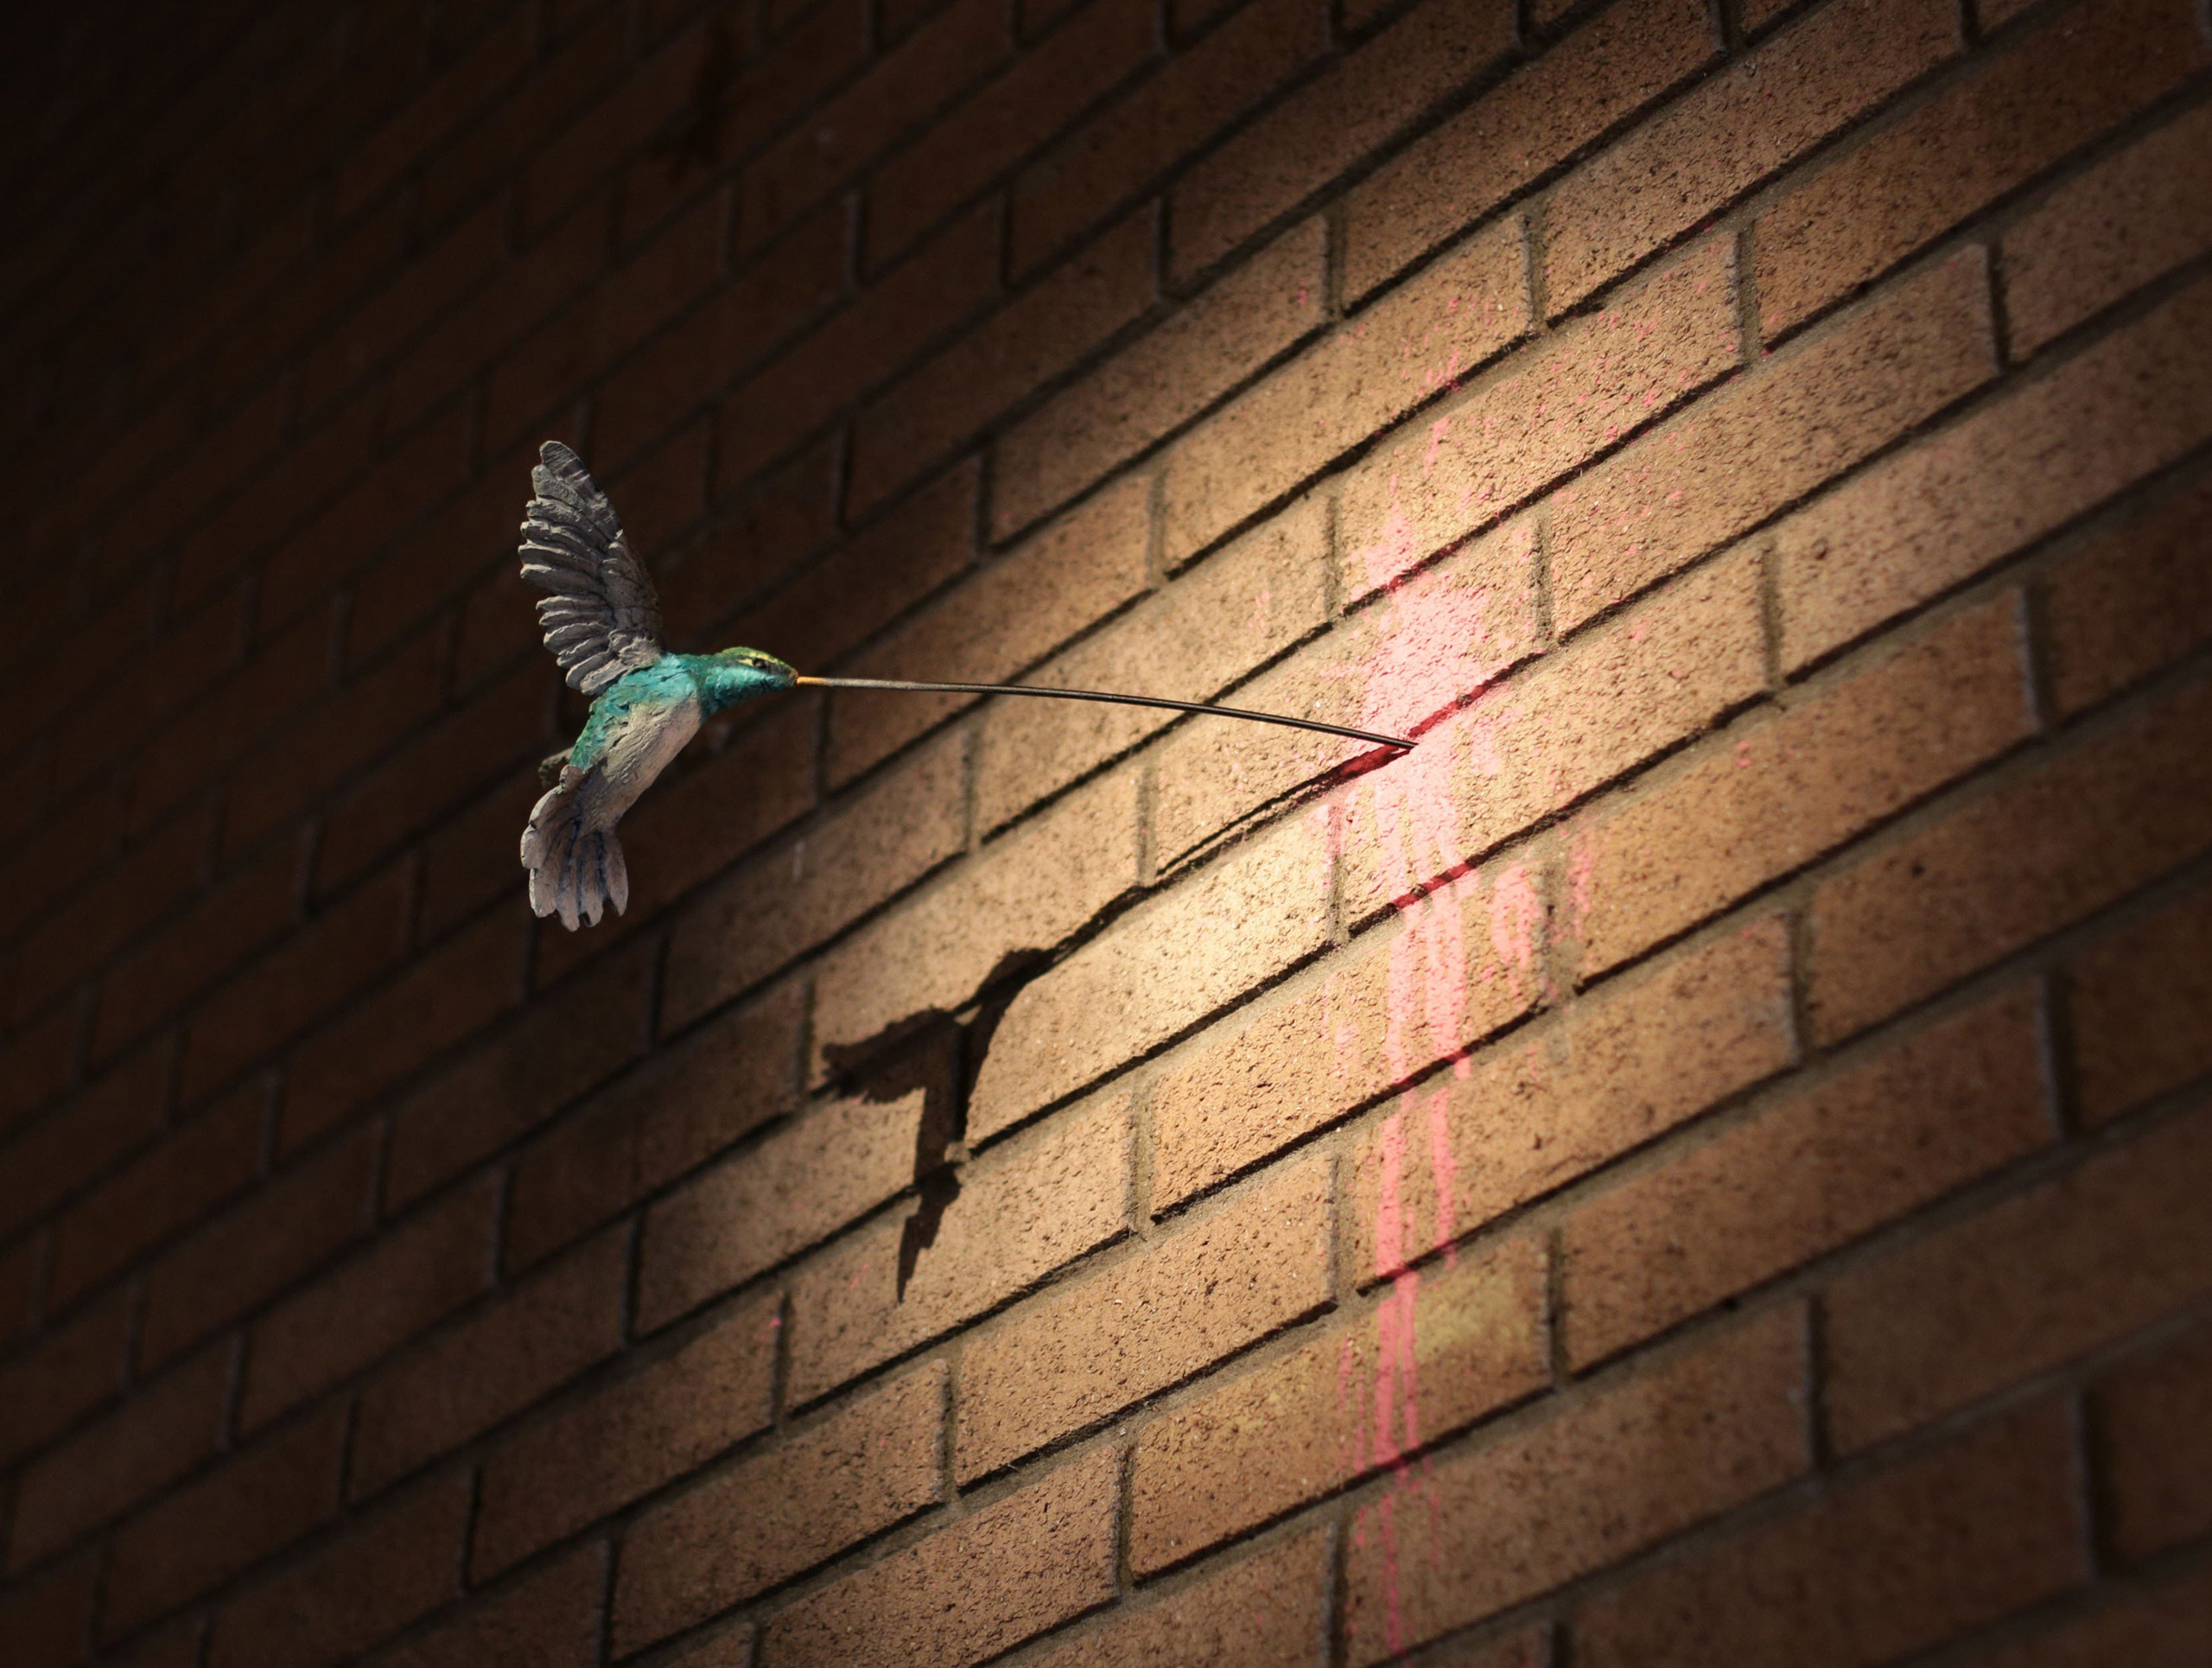 A sculpture of a hummingbird by Banksy.